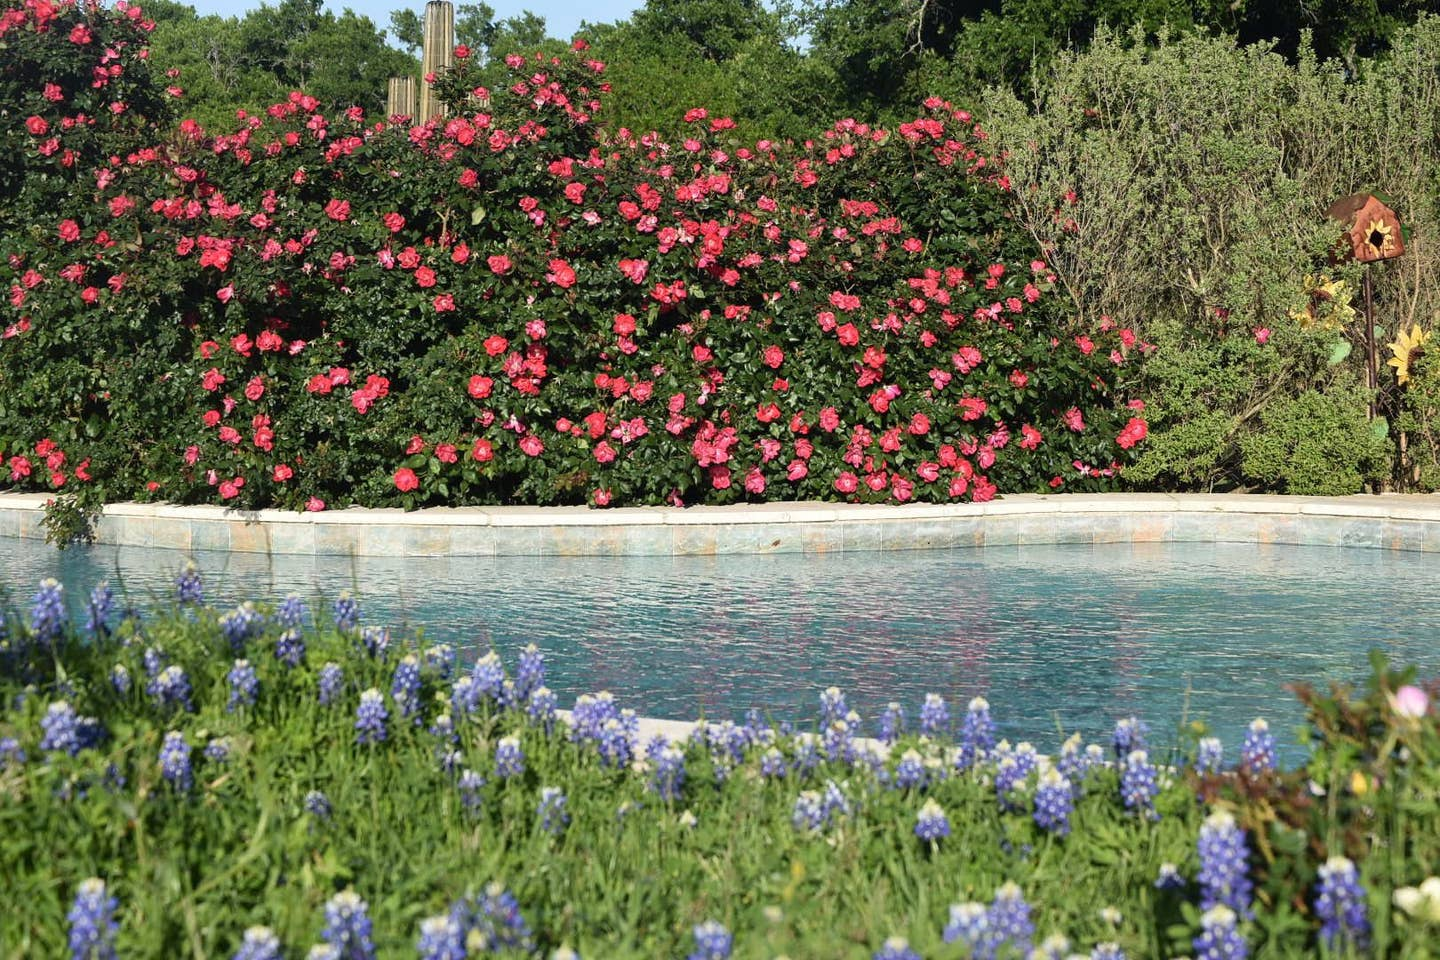 Bluebonnets by the pool, oh my! Ennis, Texas Kick Ass Ranch